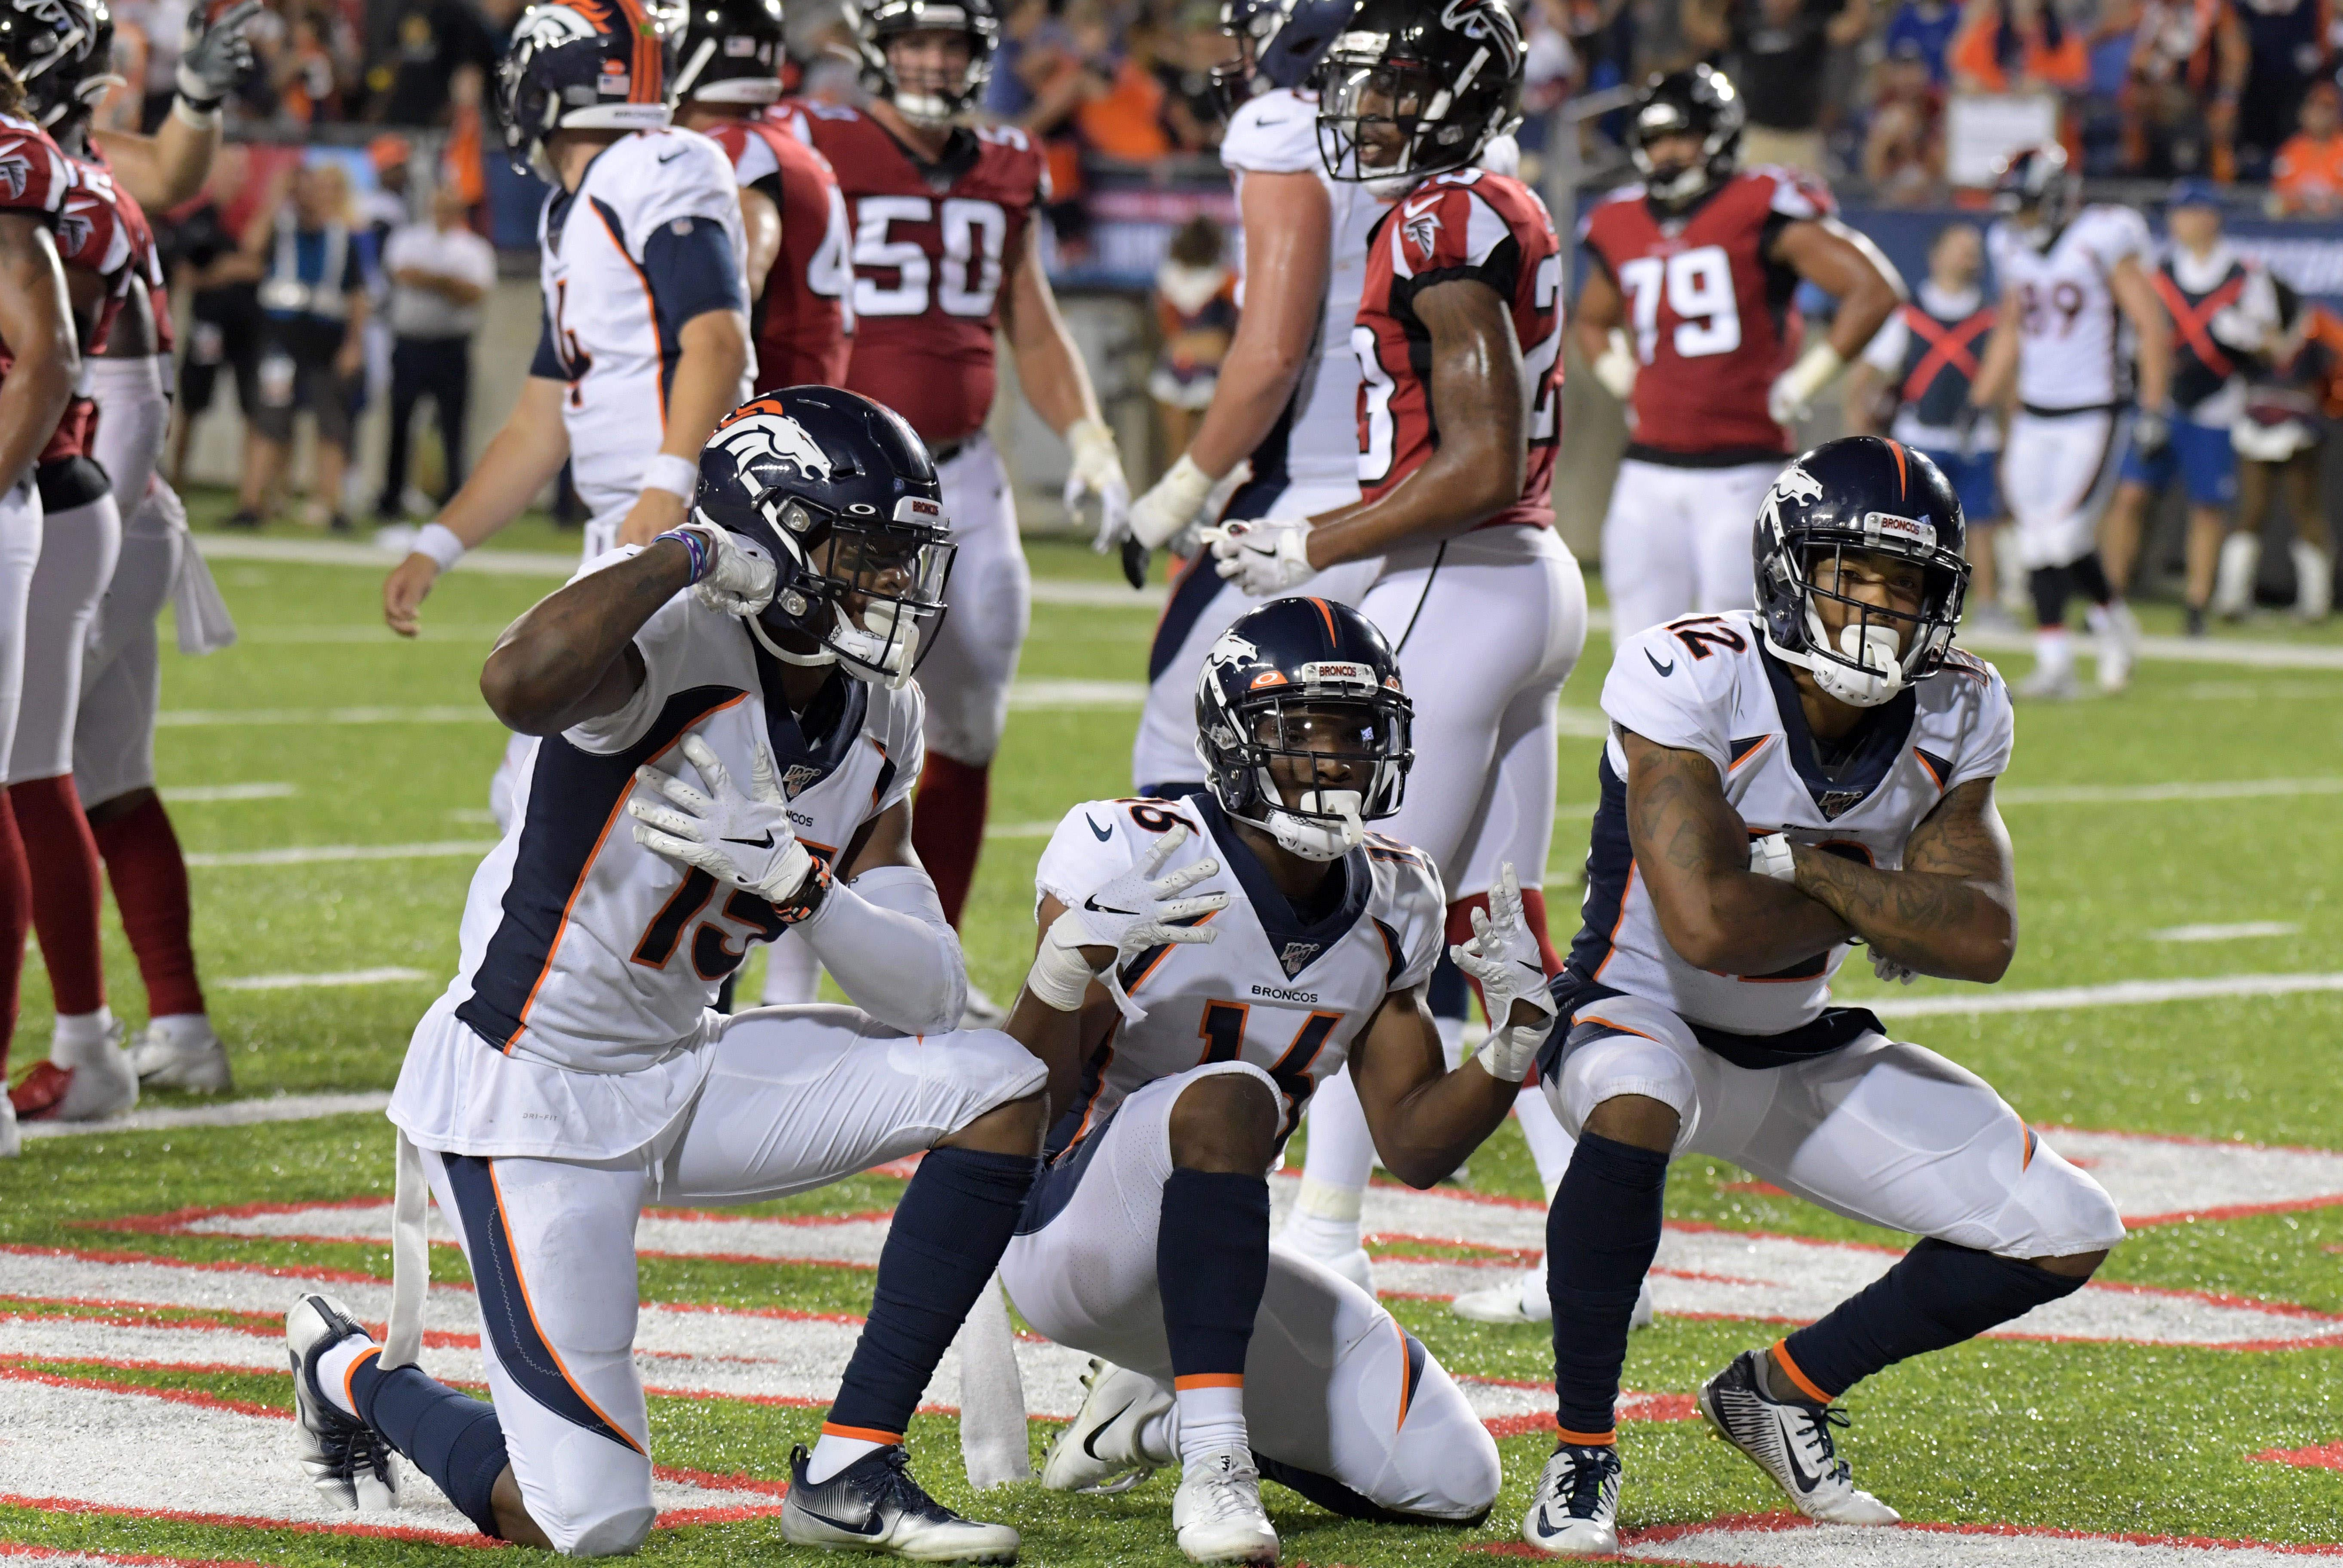 Denver Broncos kick off NFL preseason with win over Atlanta Falcons in Hall of Fame Game